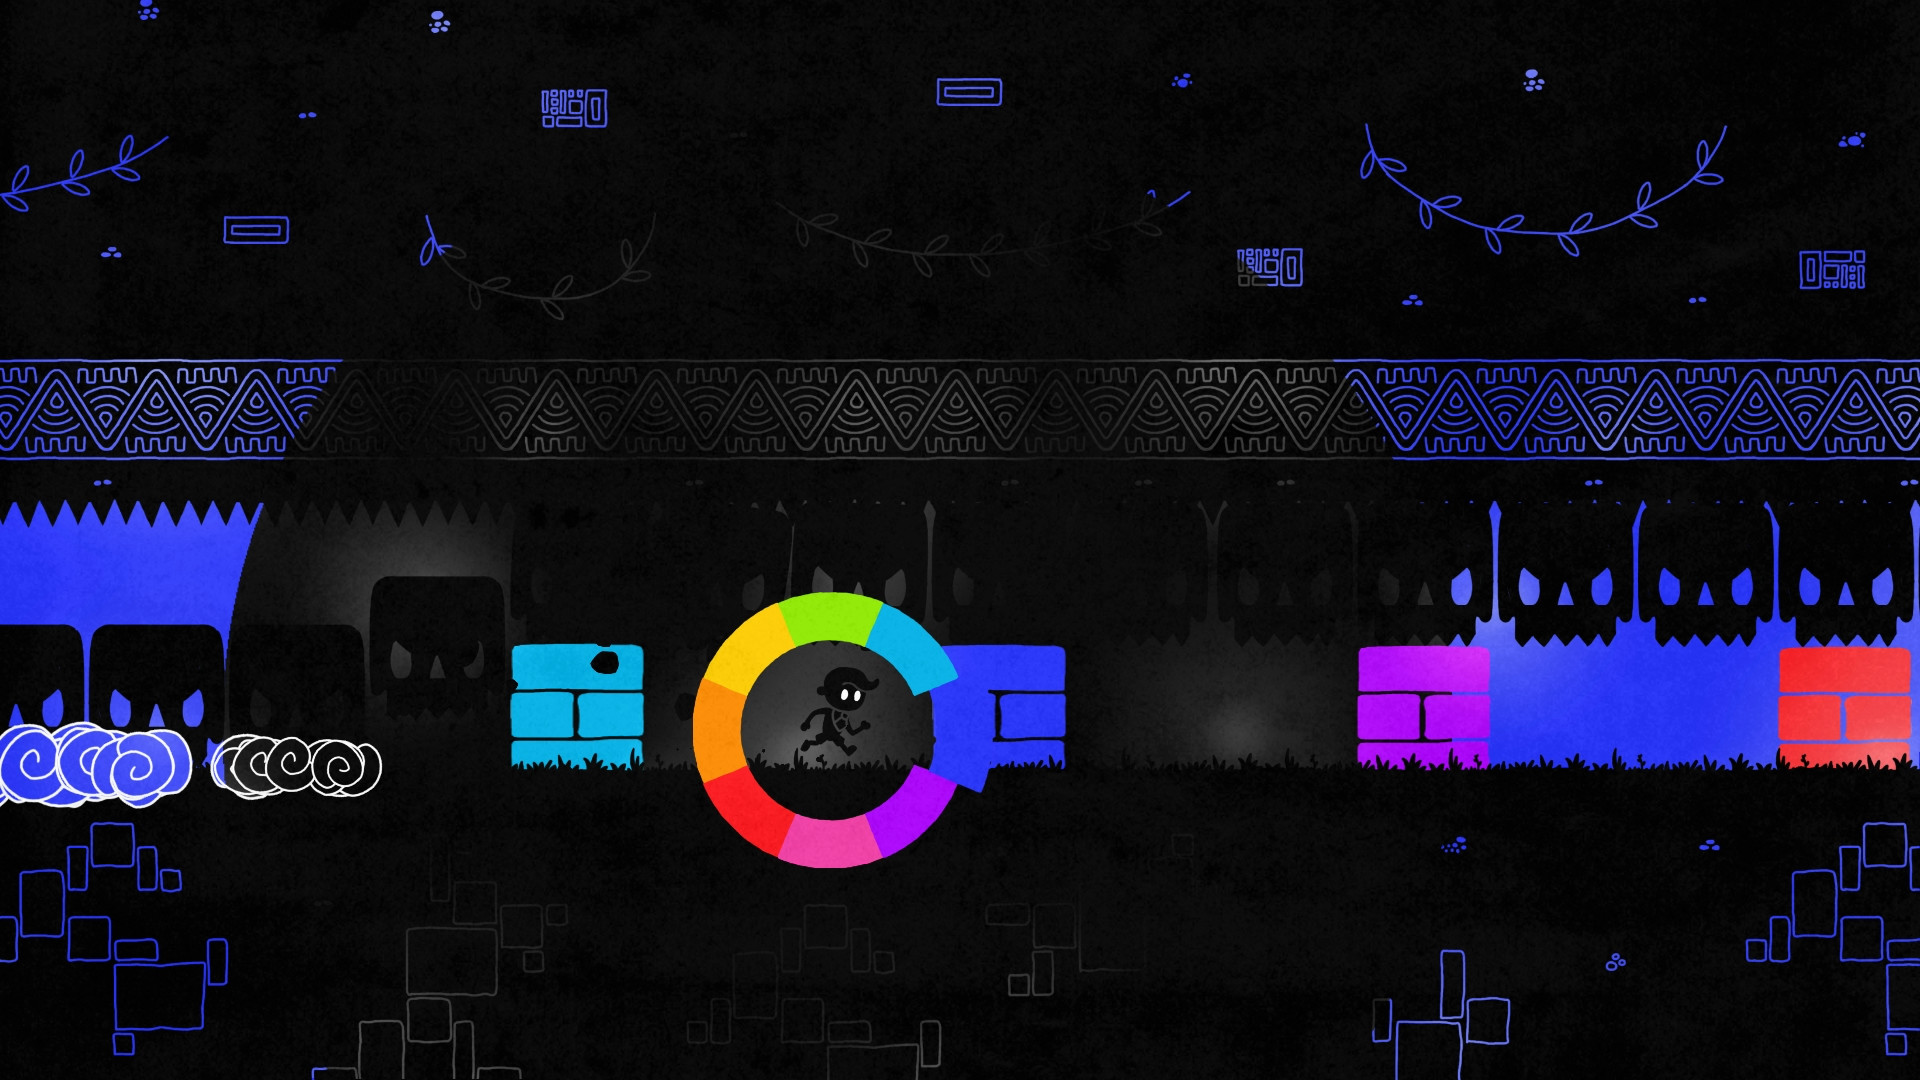 Download for free Epic is handing out a colorful Hue - Download for free: Epic is handing out a colorful Hue adventure for Mac and PC